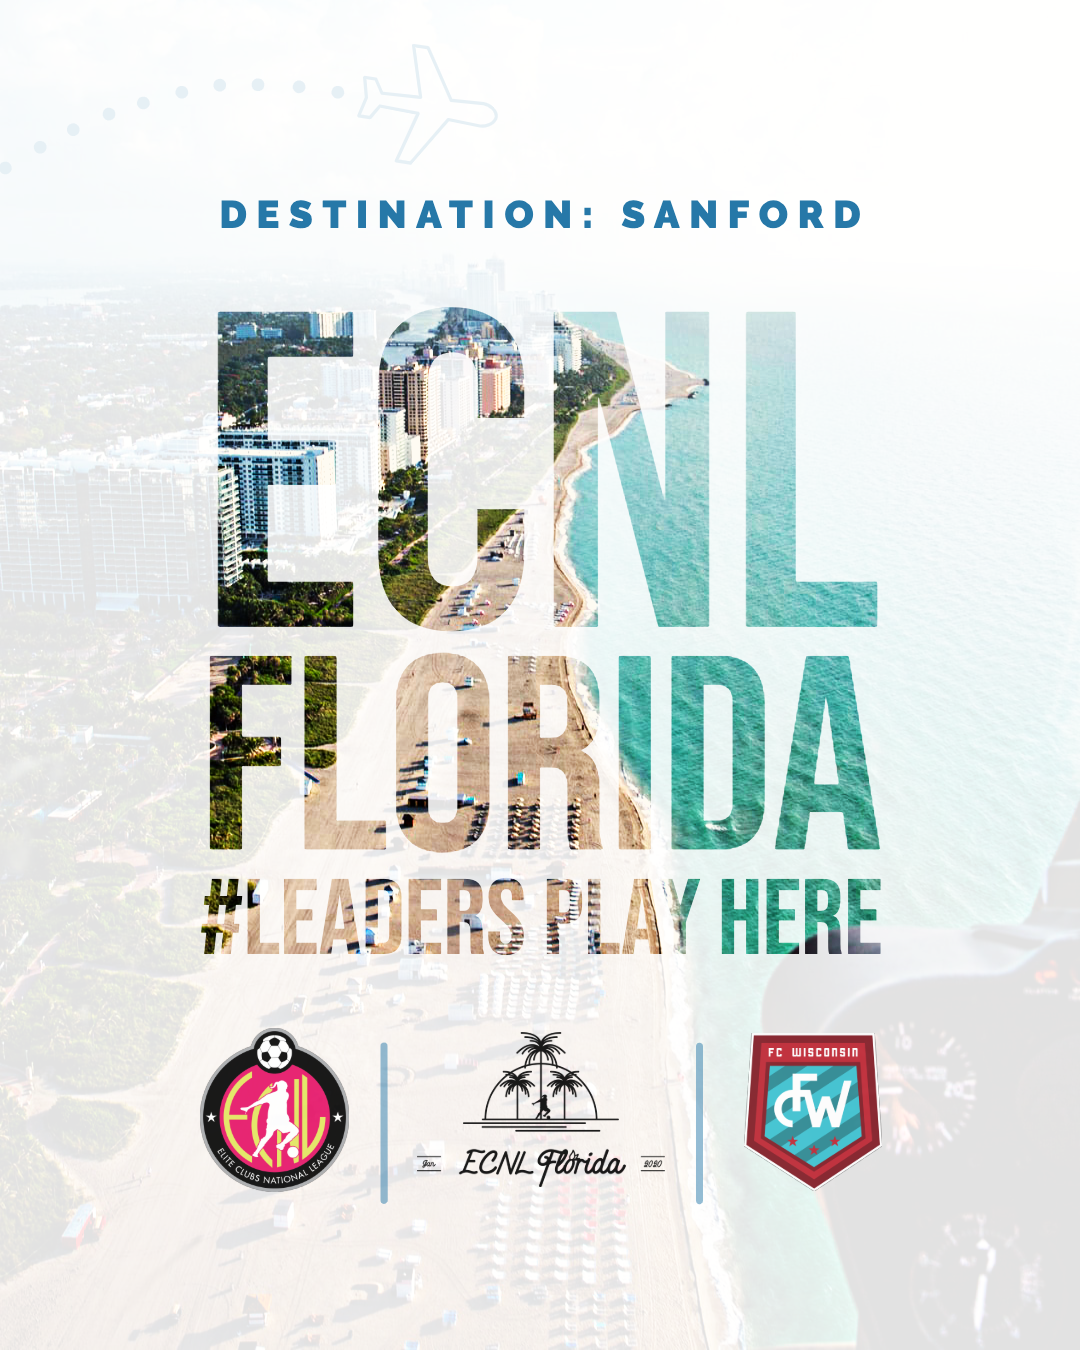 ECNL Program Goes 4-2 Before Hundreds of Coaches